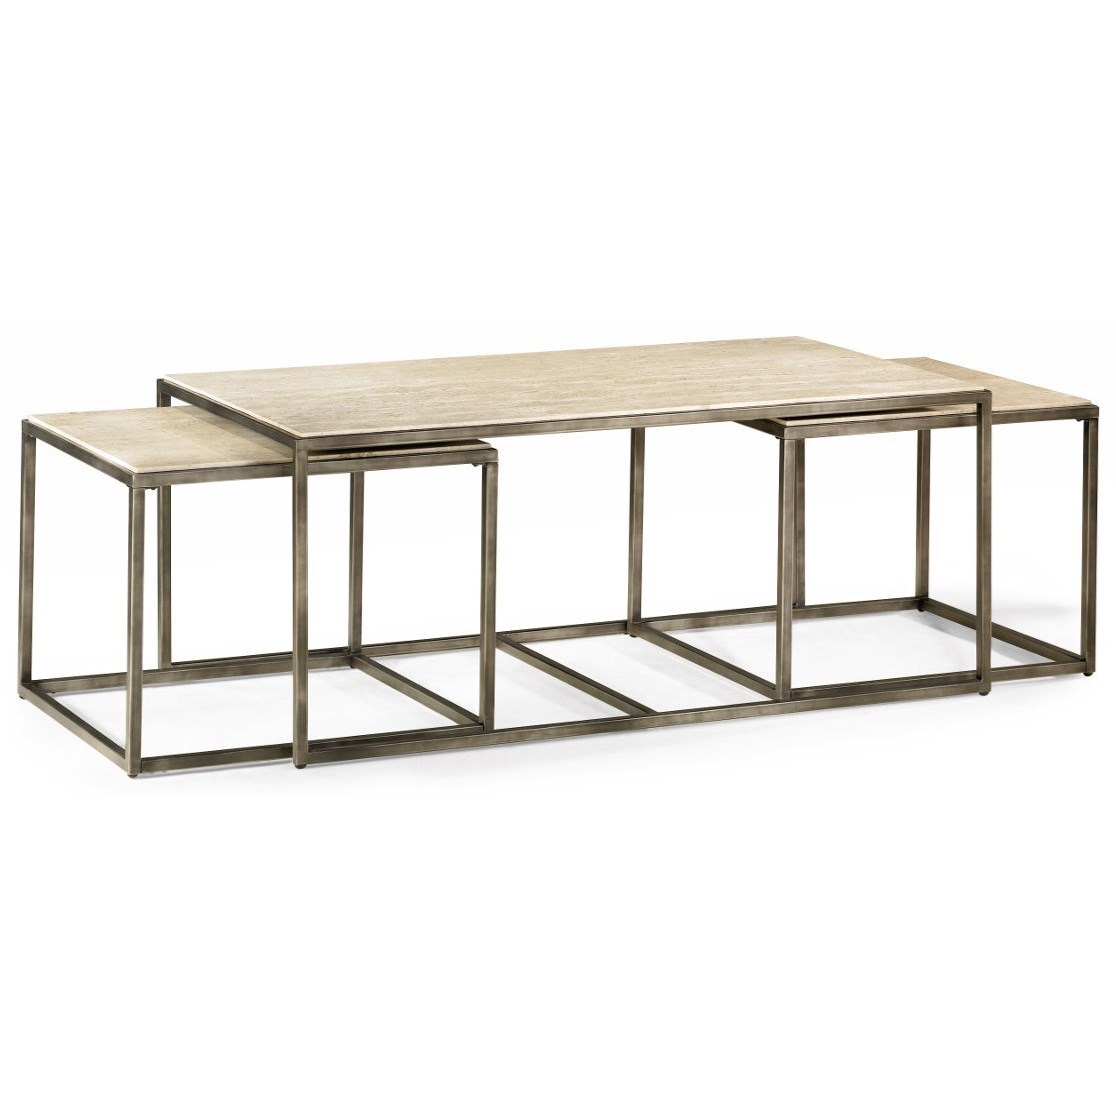 Modern Basics Rectangular Cocktail Table With Bronze With Nesting Tables    Morris Home   Cocktail/Coffee Tables